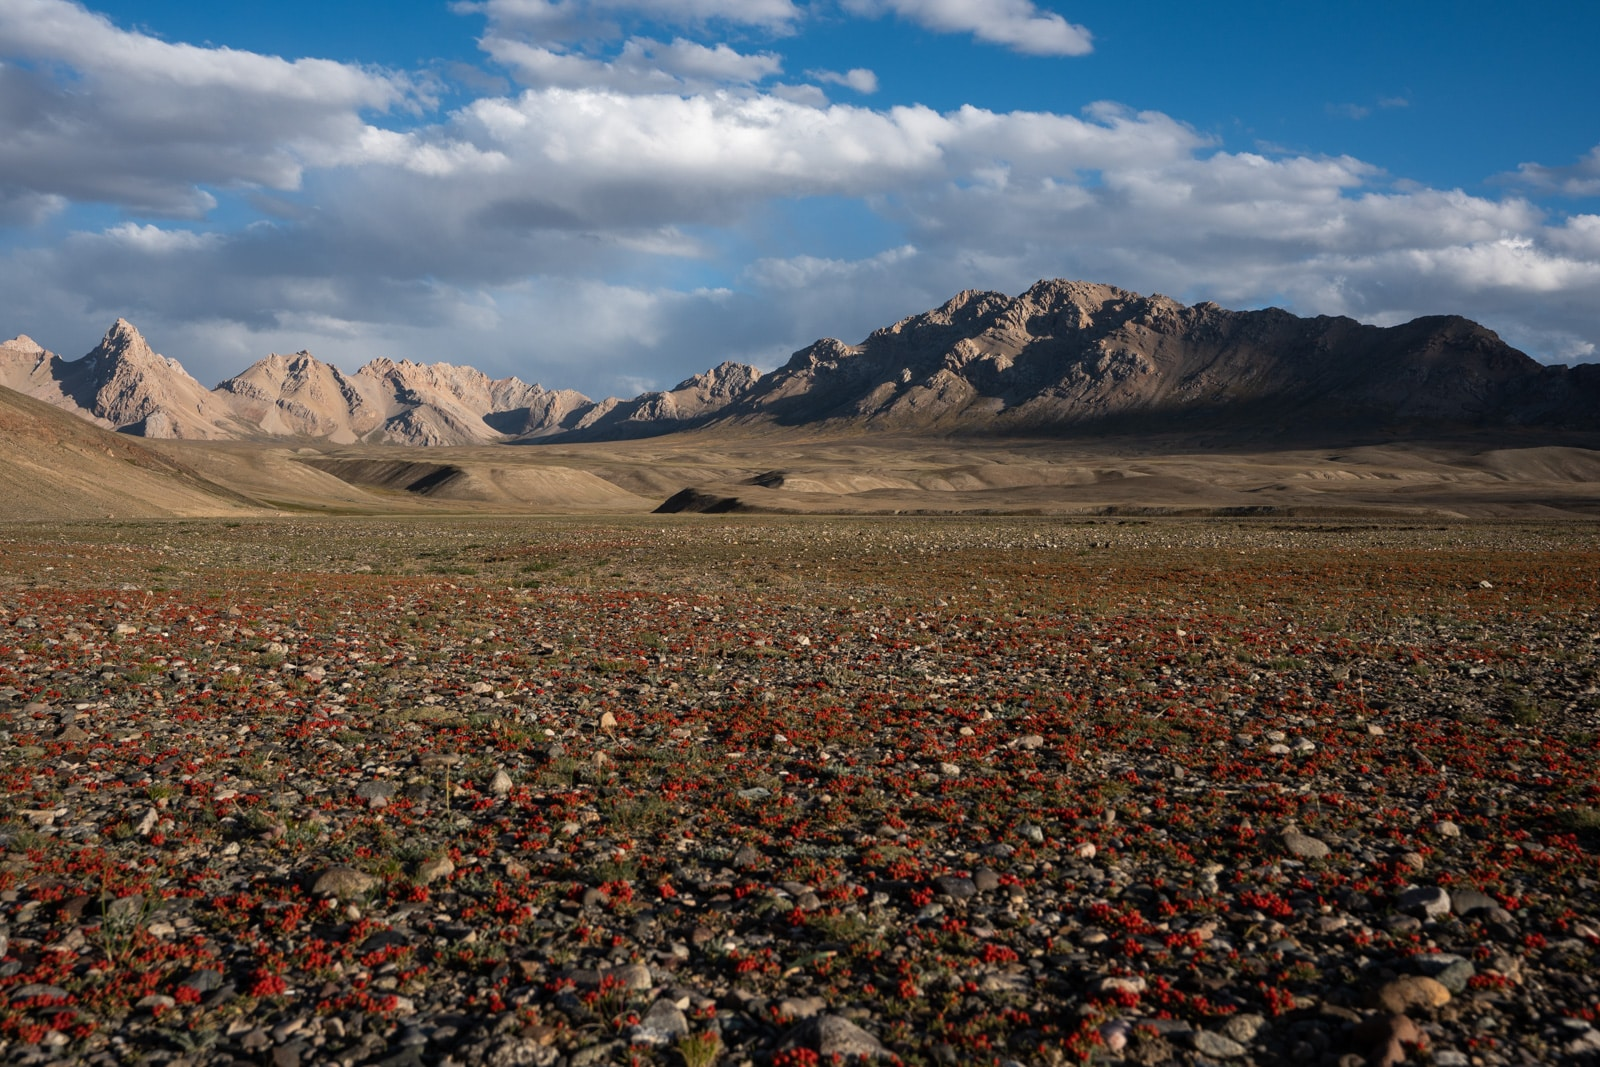 Chekende berries in the Pamir Mountains of Tajikistan